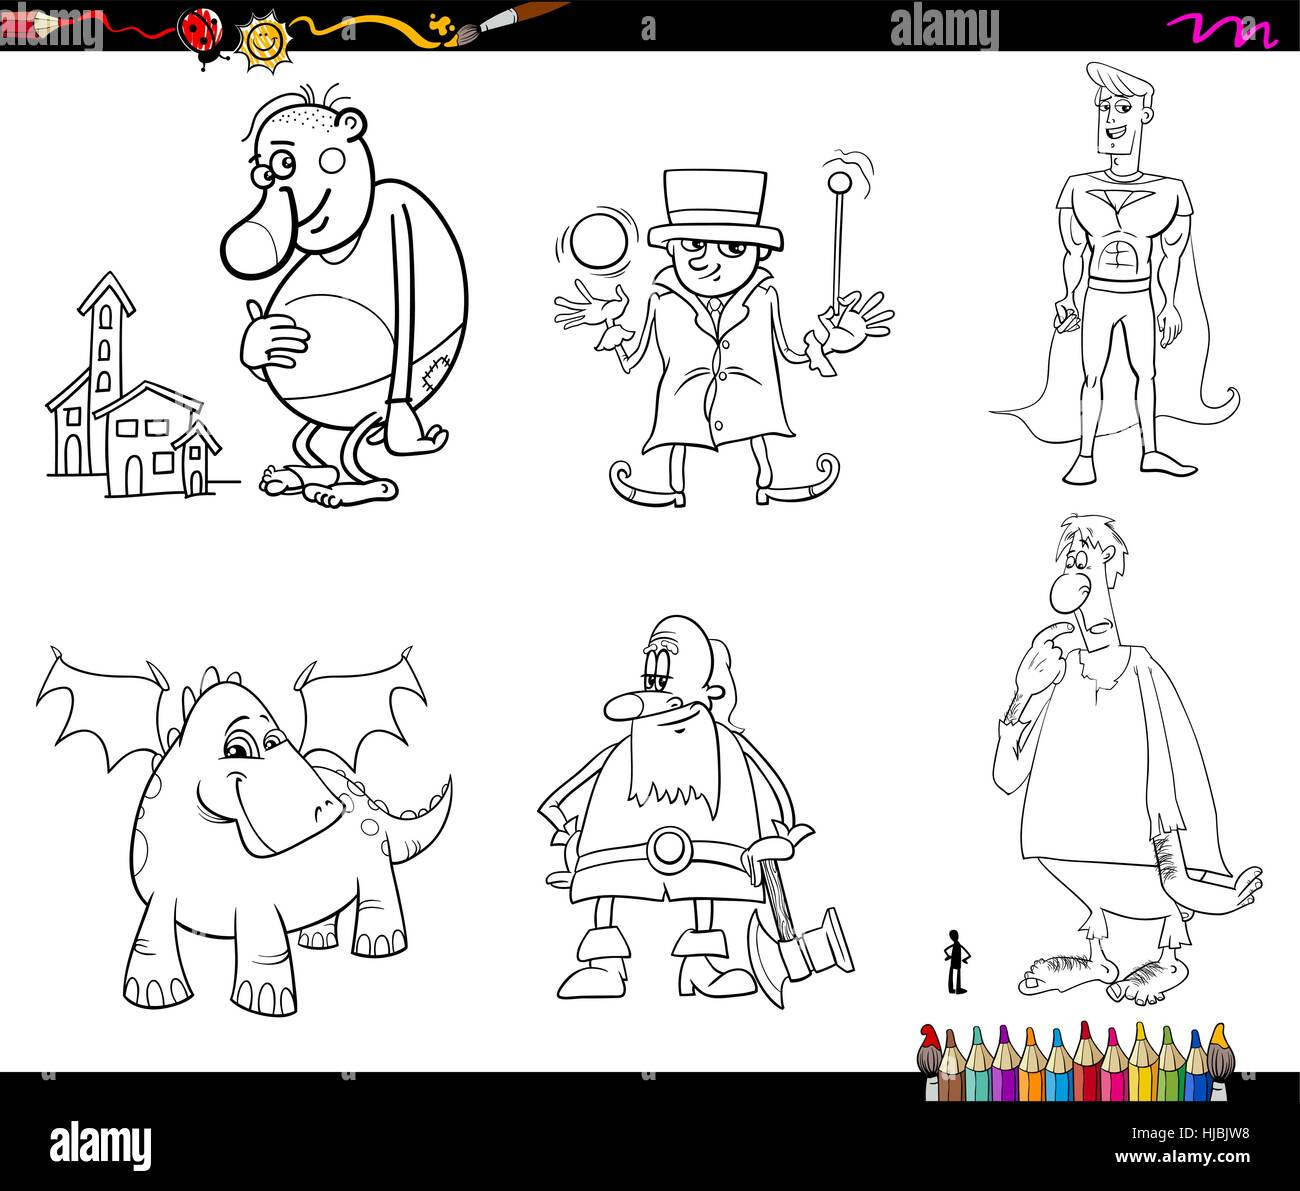 Black and White Cartoon Illustrations of Fantasy or Fairy Tale Characters Set Coloring Page Stock Vector